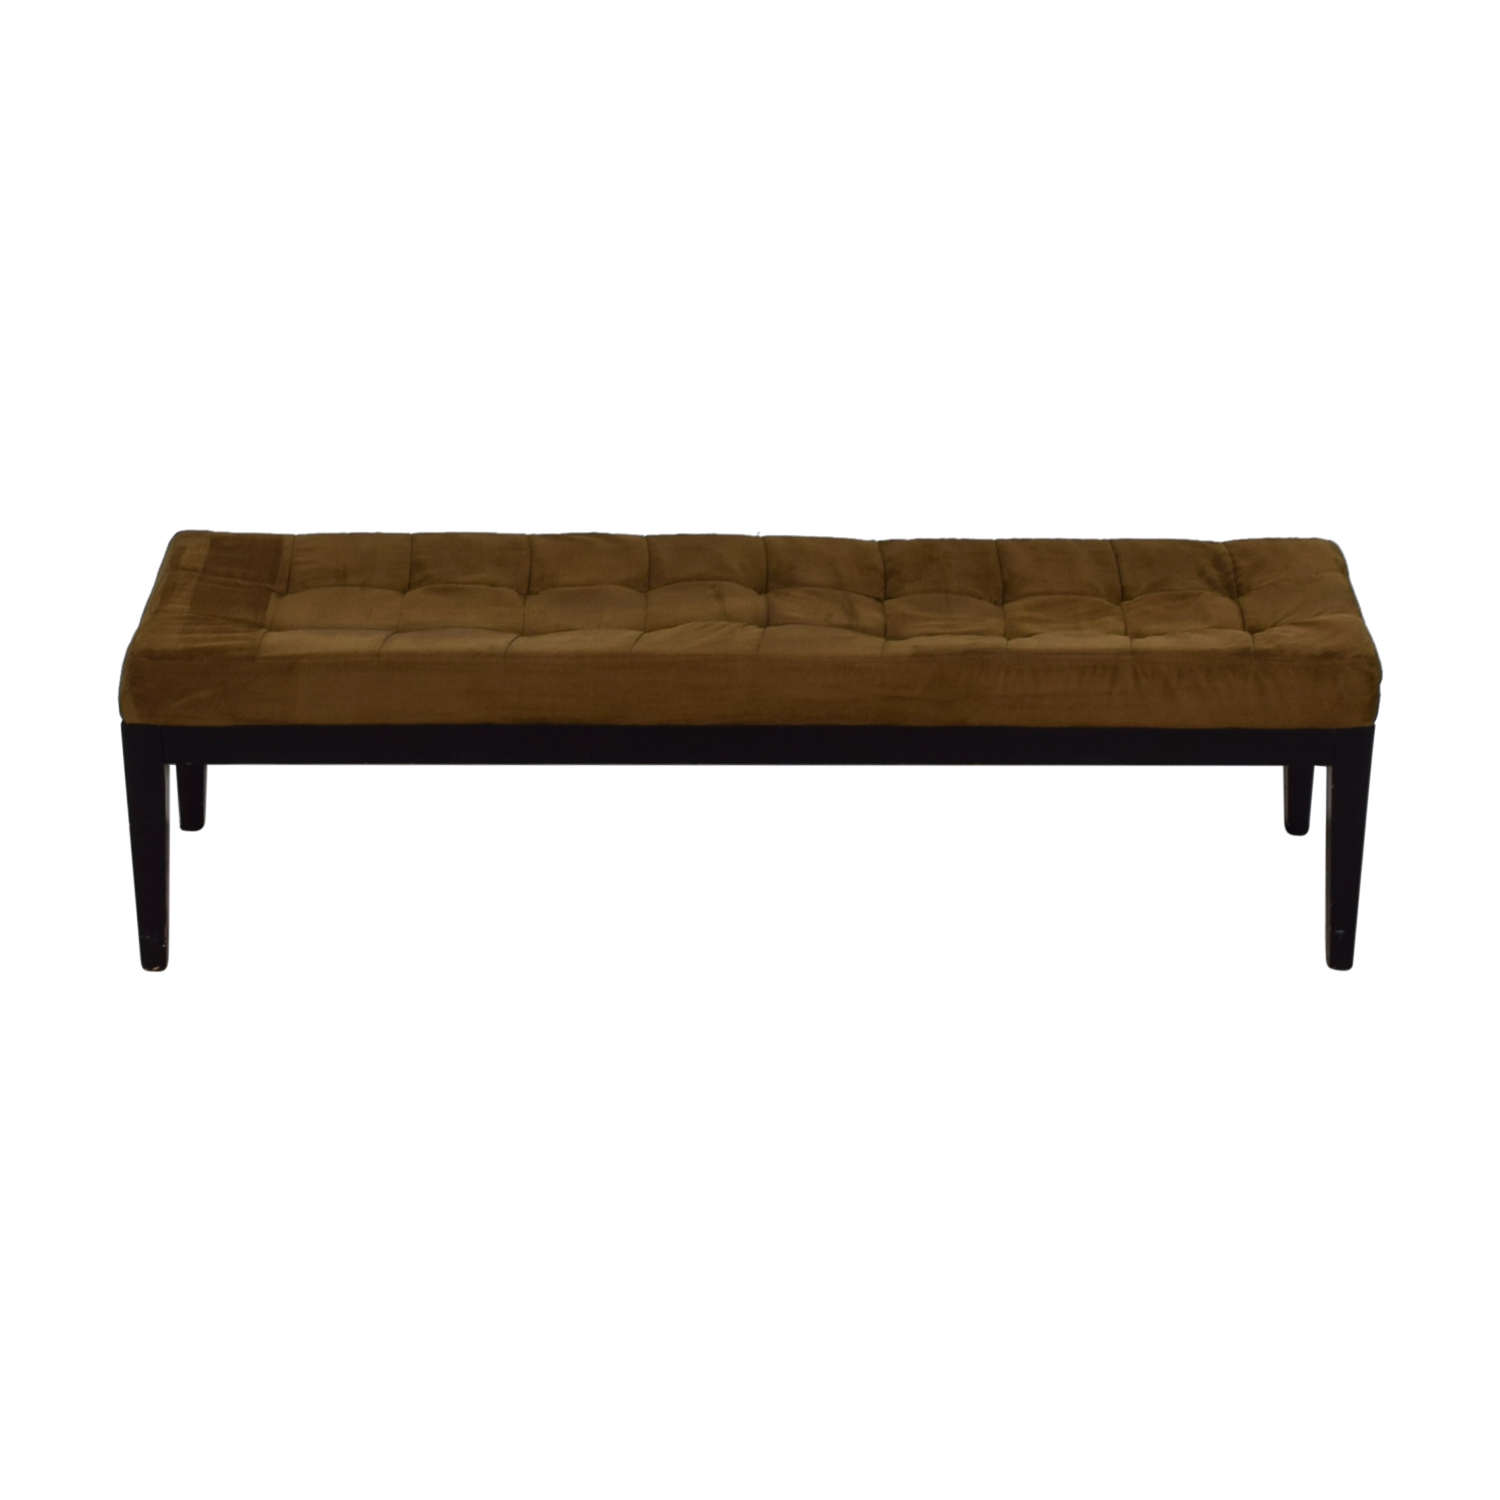 Brown Tufted Microfiber Bench second hand